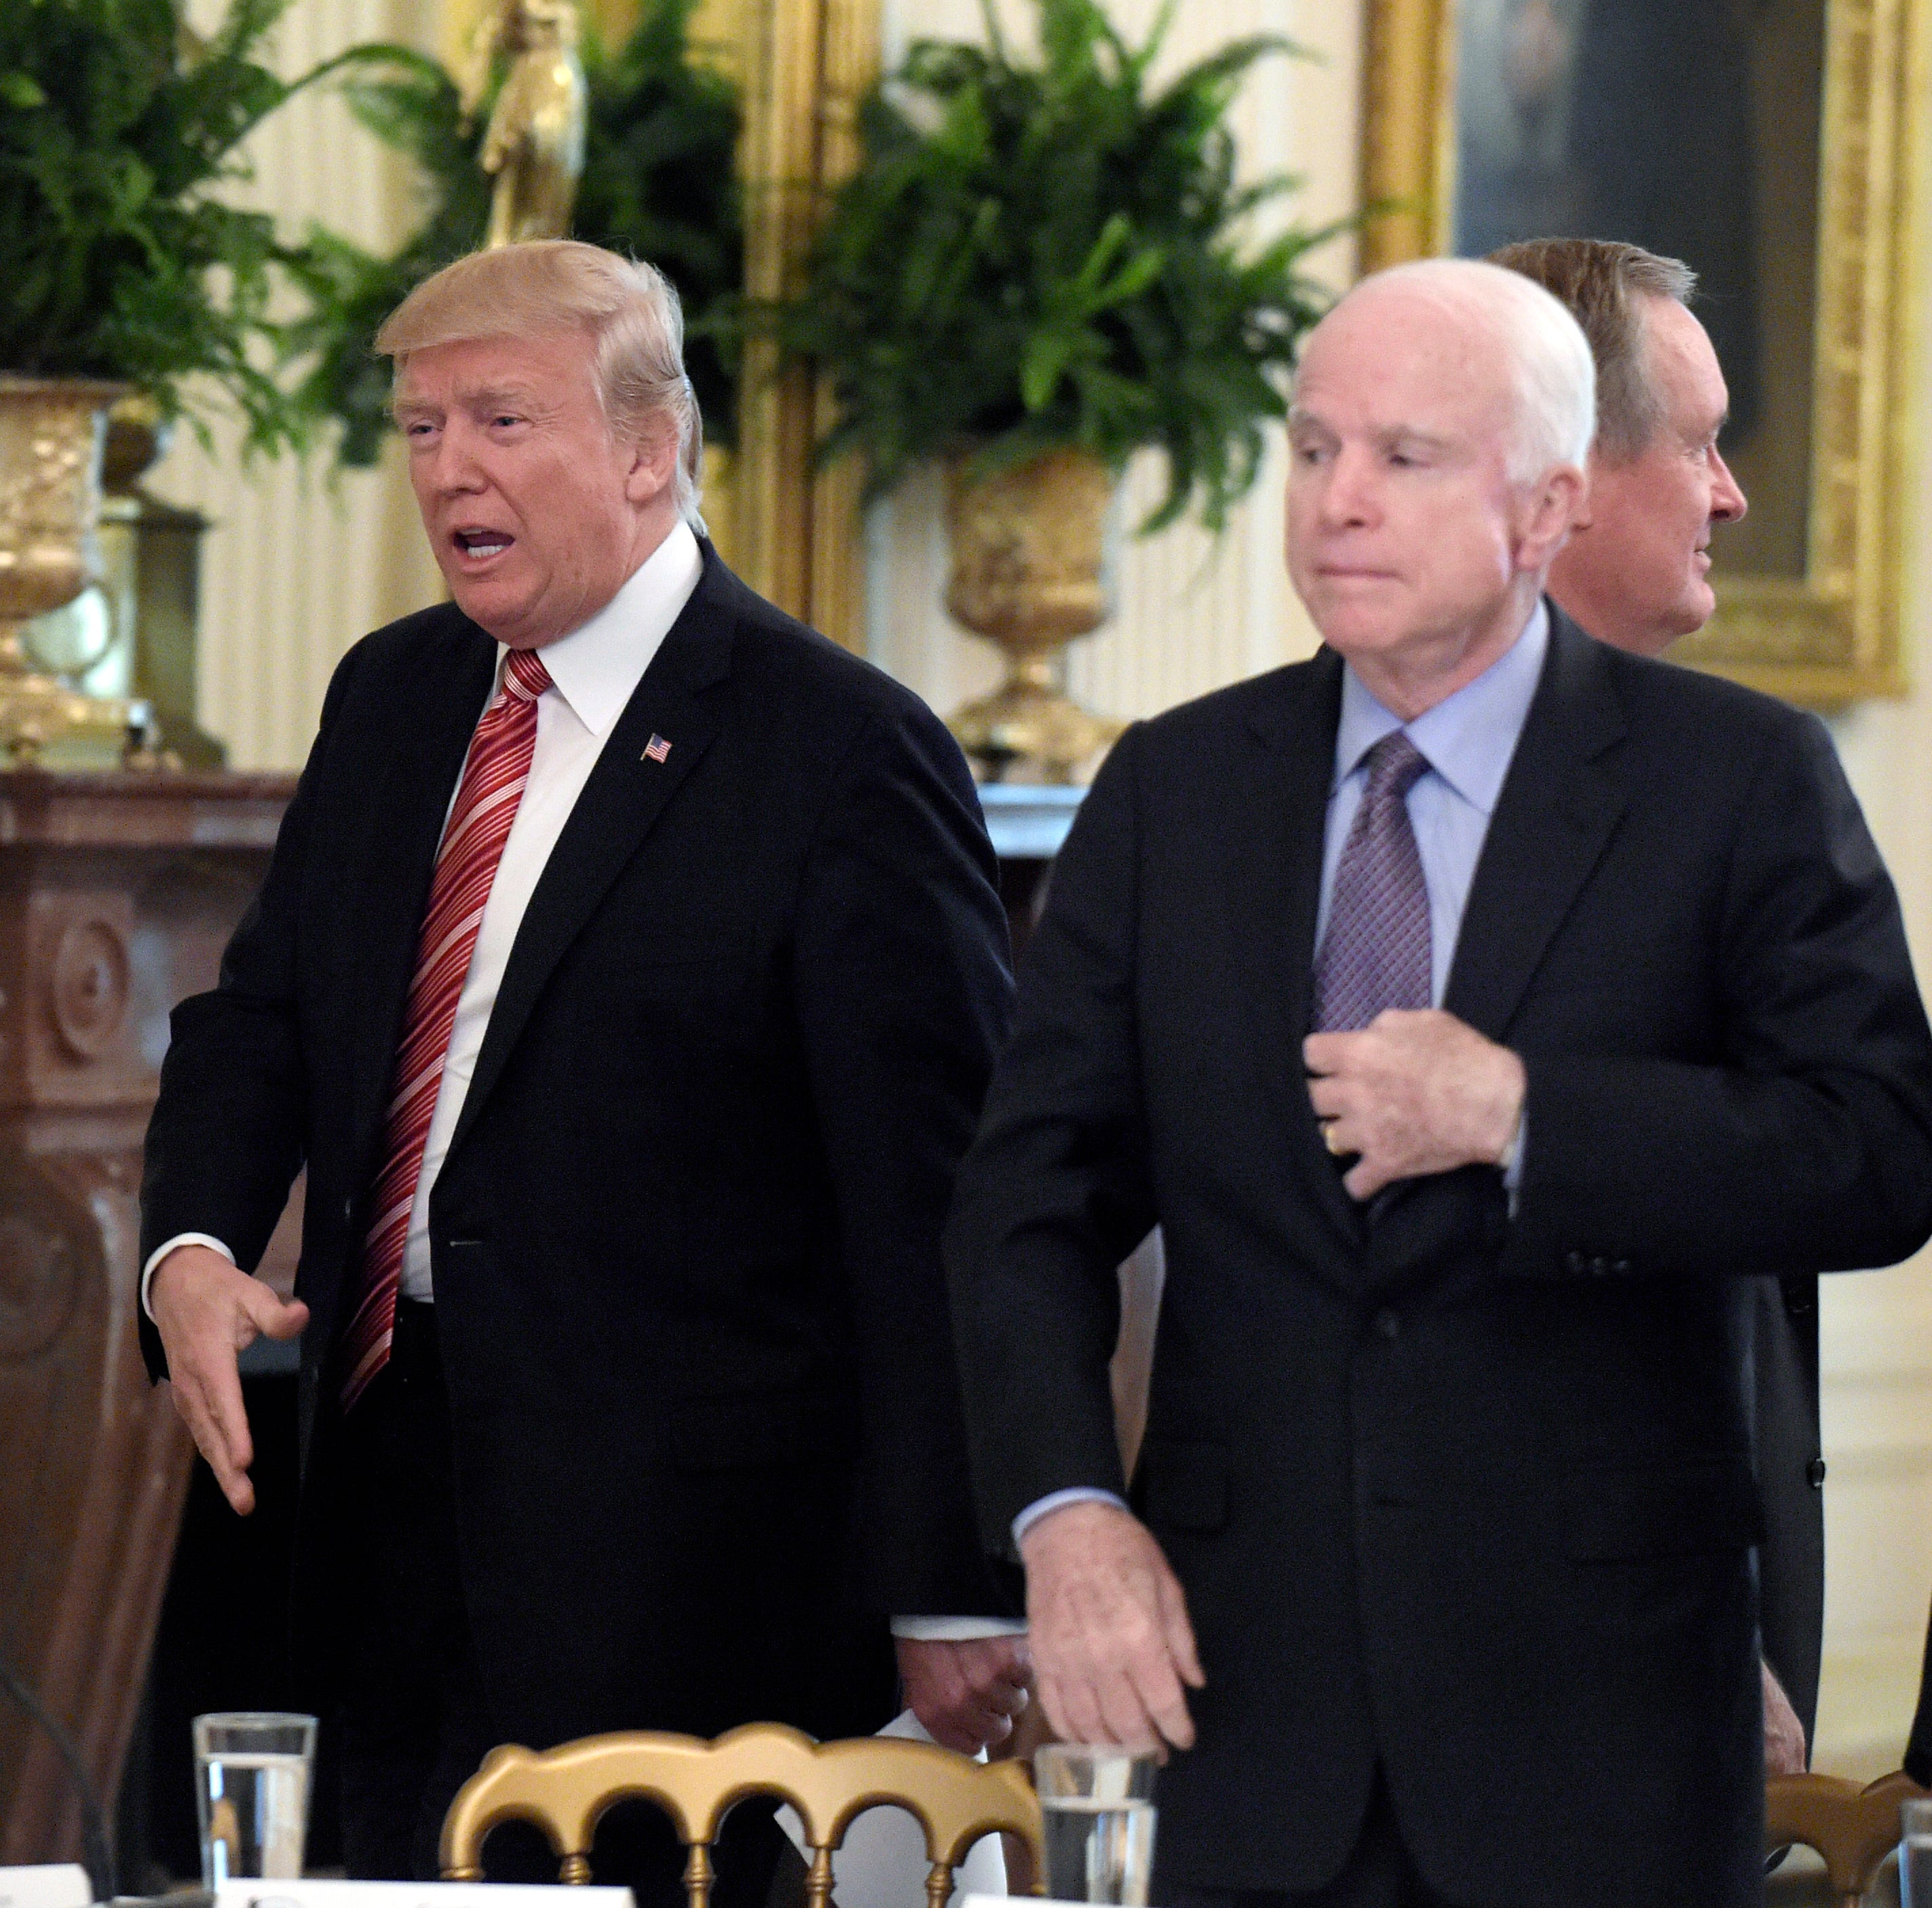 Tale of the Tape: Donald Trump vs. John McCain